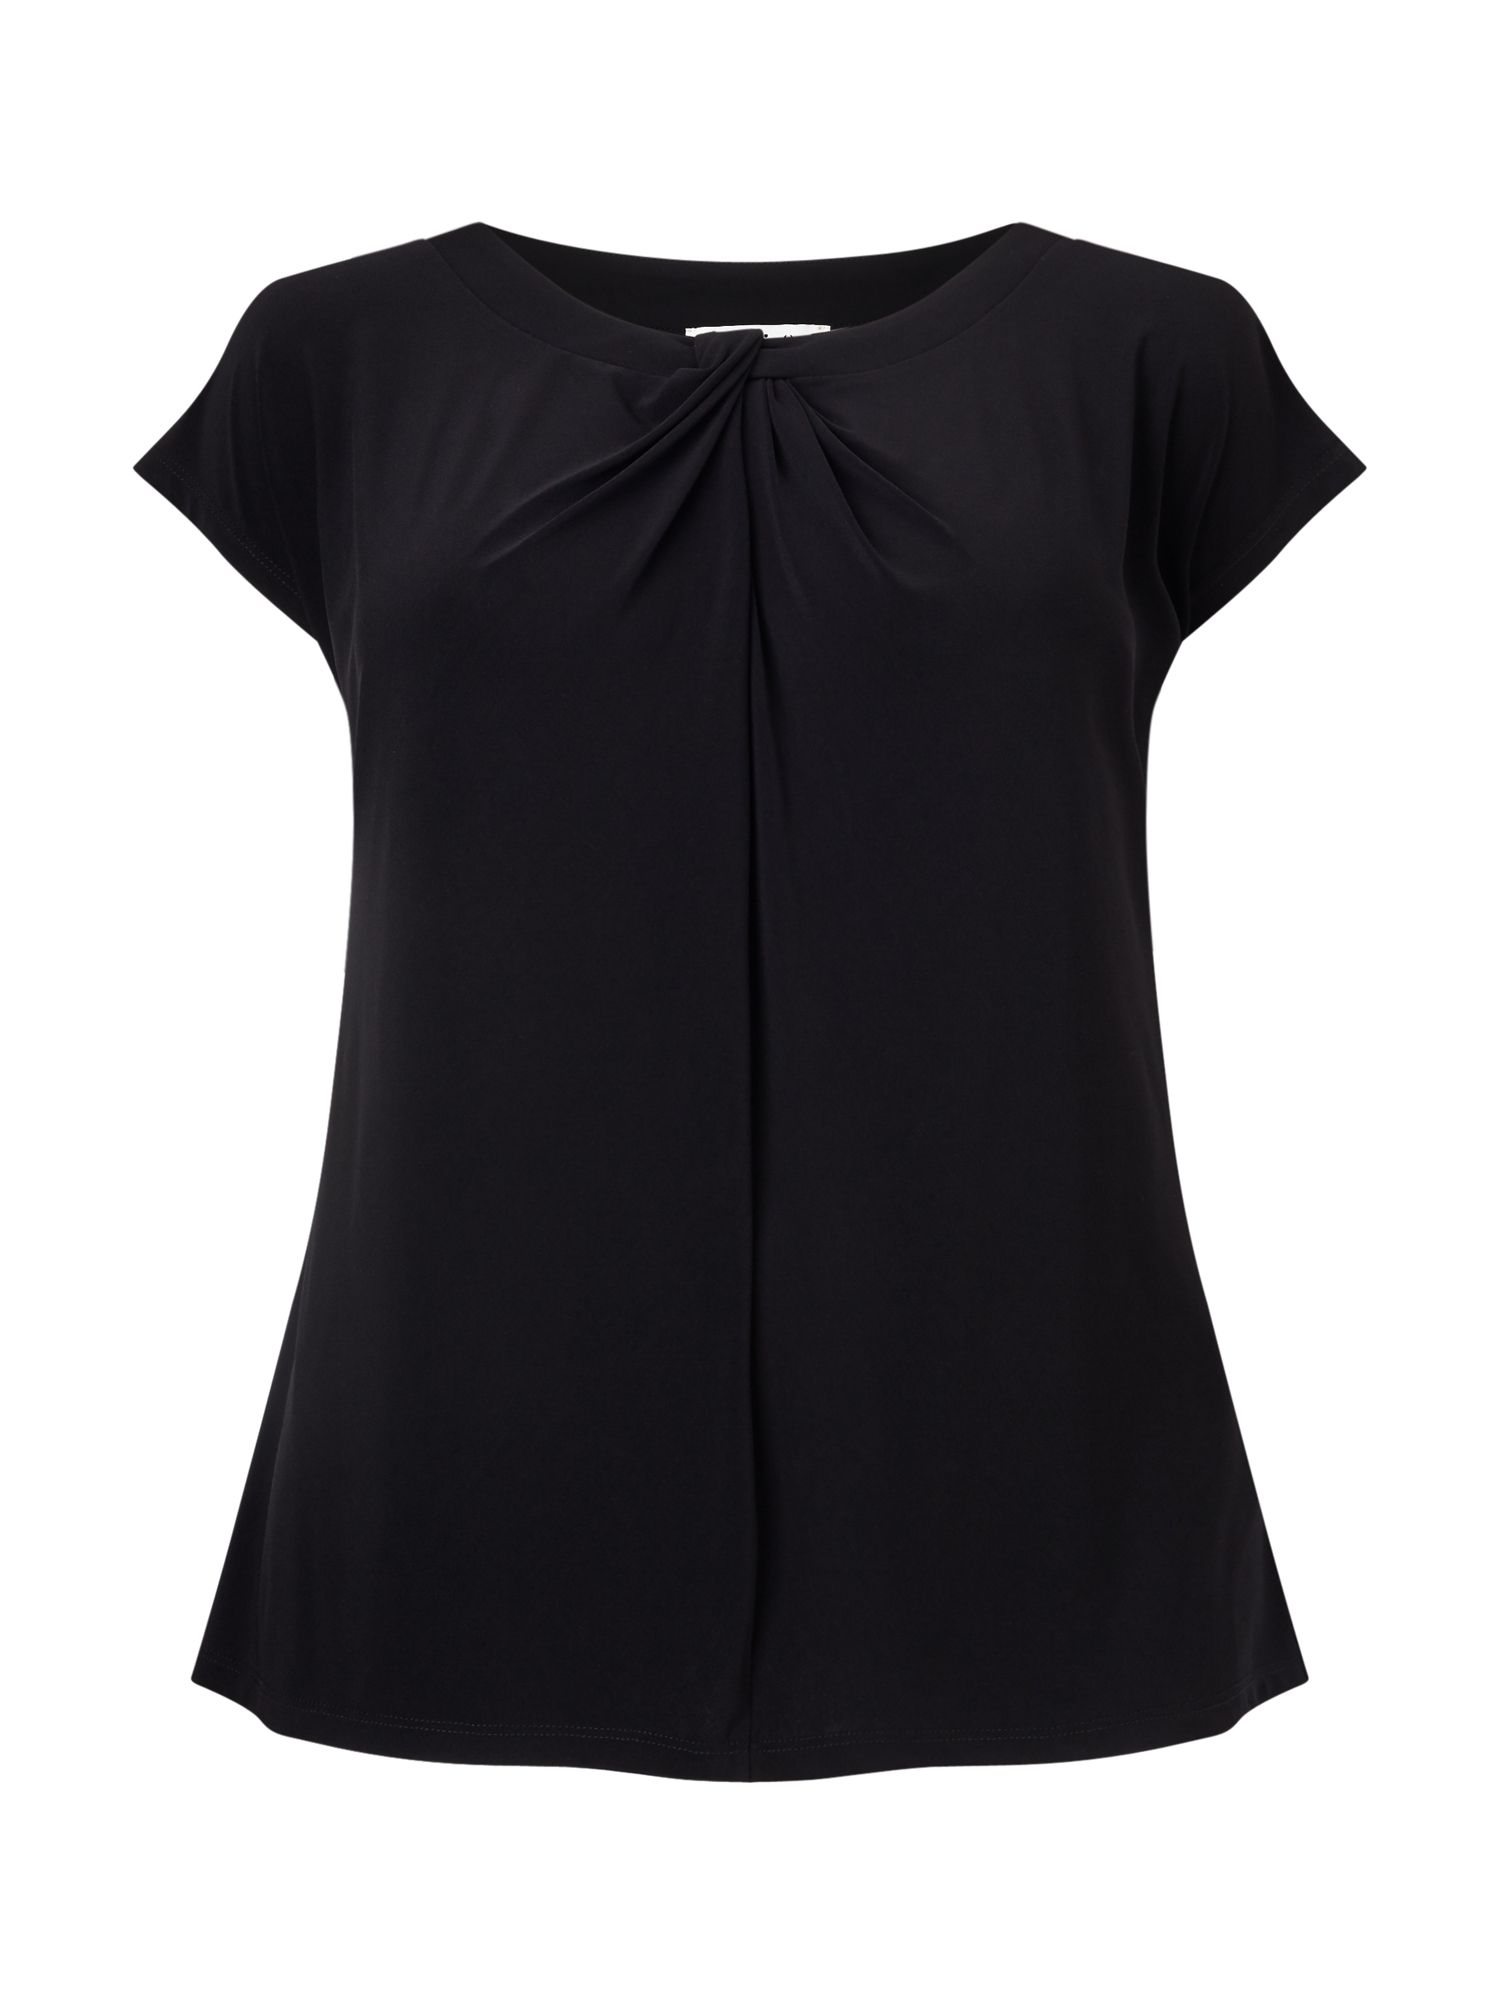 Studio 8 Louisa Top, Black